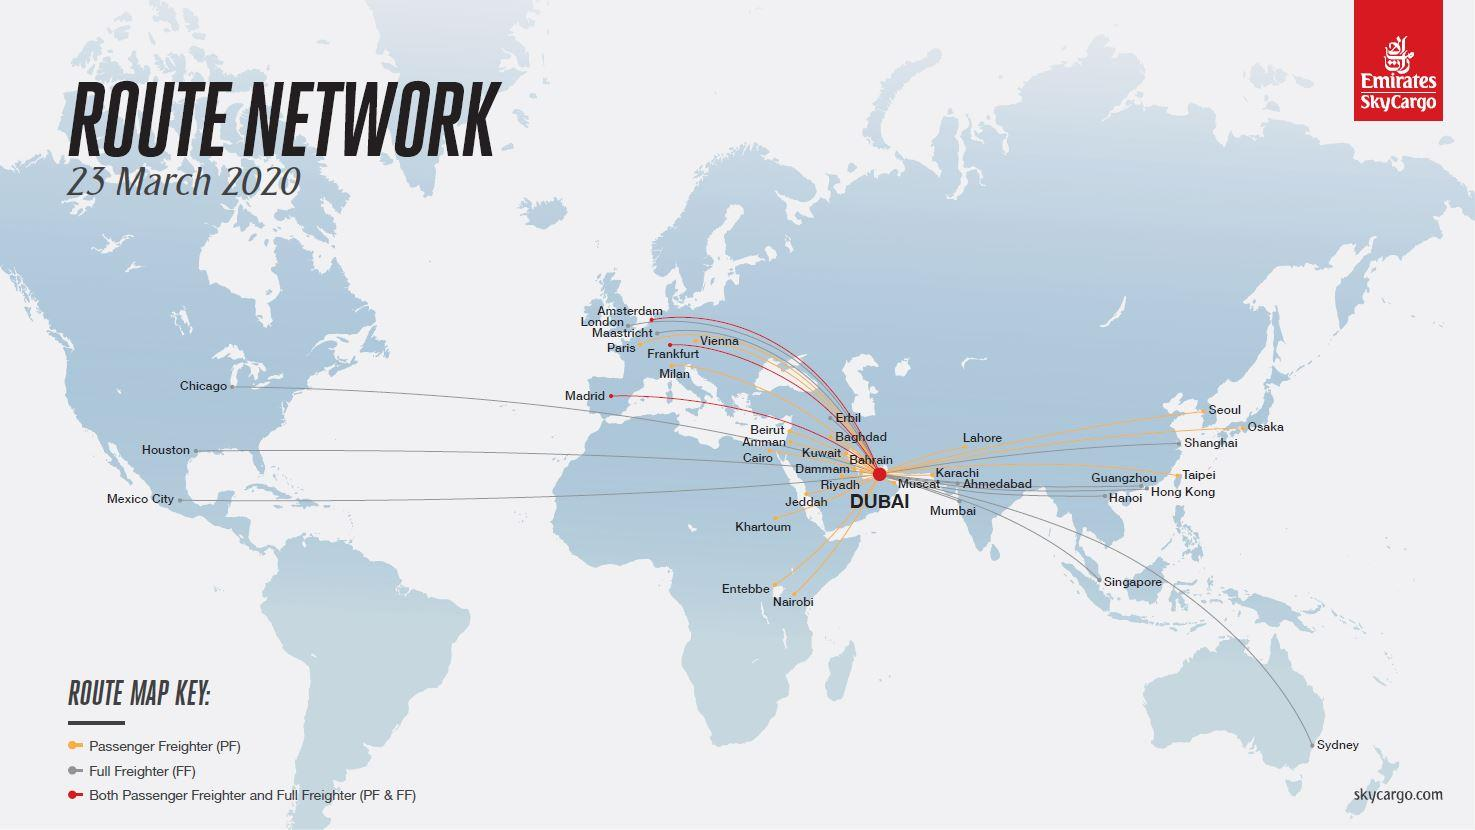 Route network of Emirates SkyCargo's passenger freighters and full freighters published as of March 23